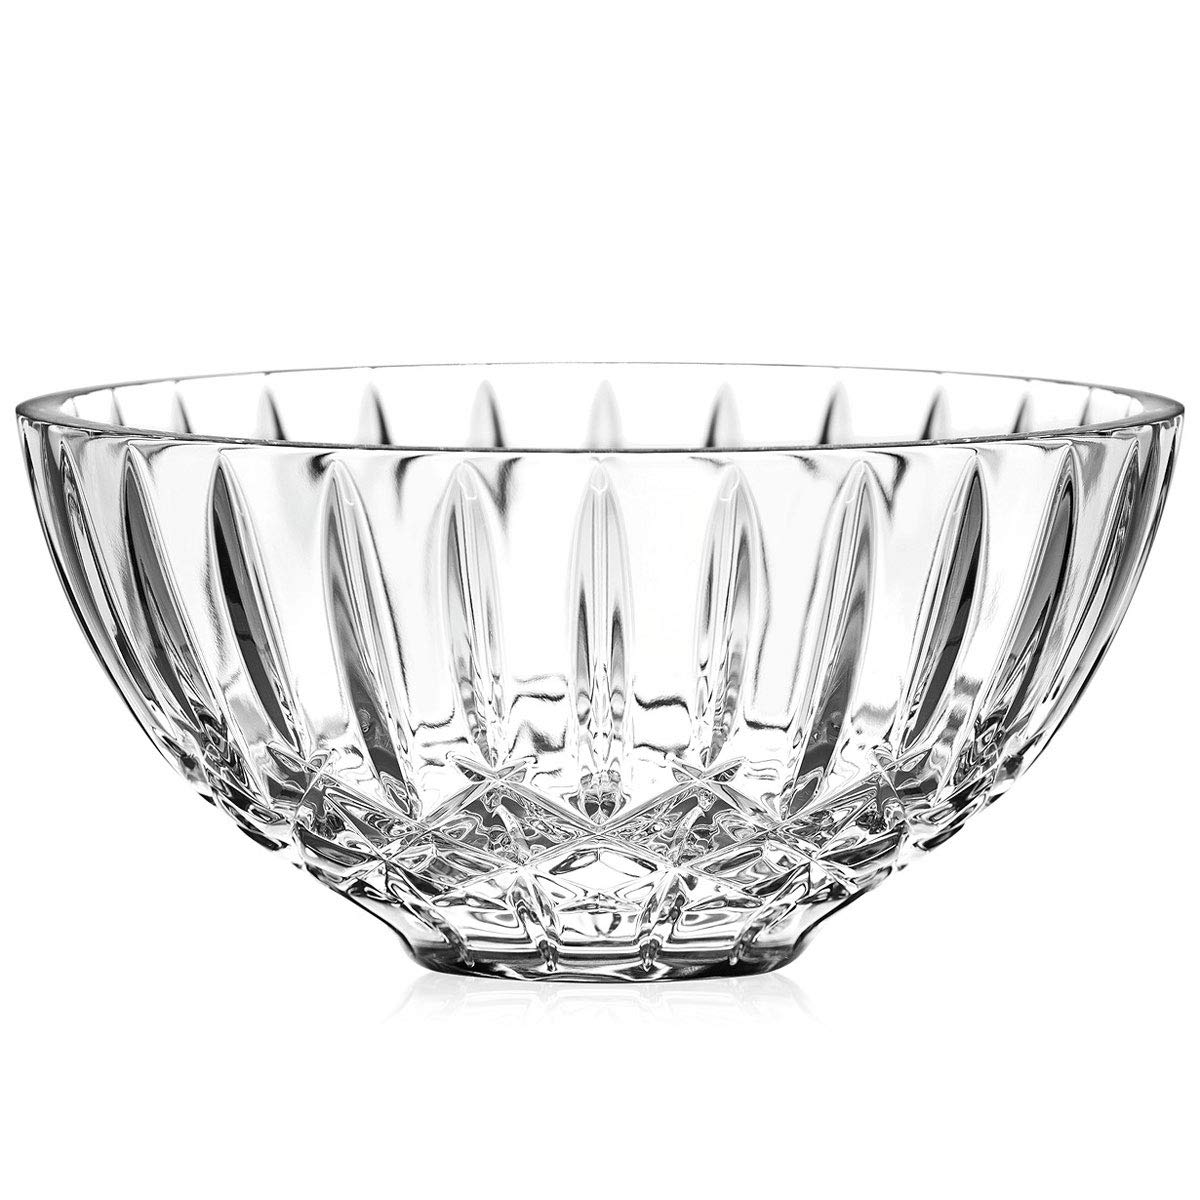 Waterford Heritage Crystal Serving Centerpiece Bowl, 8 Inches 40035284